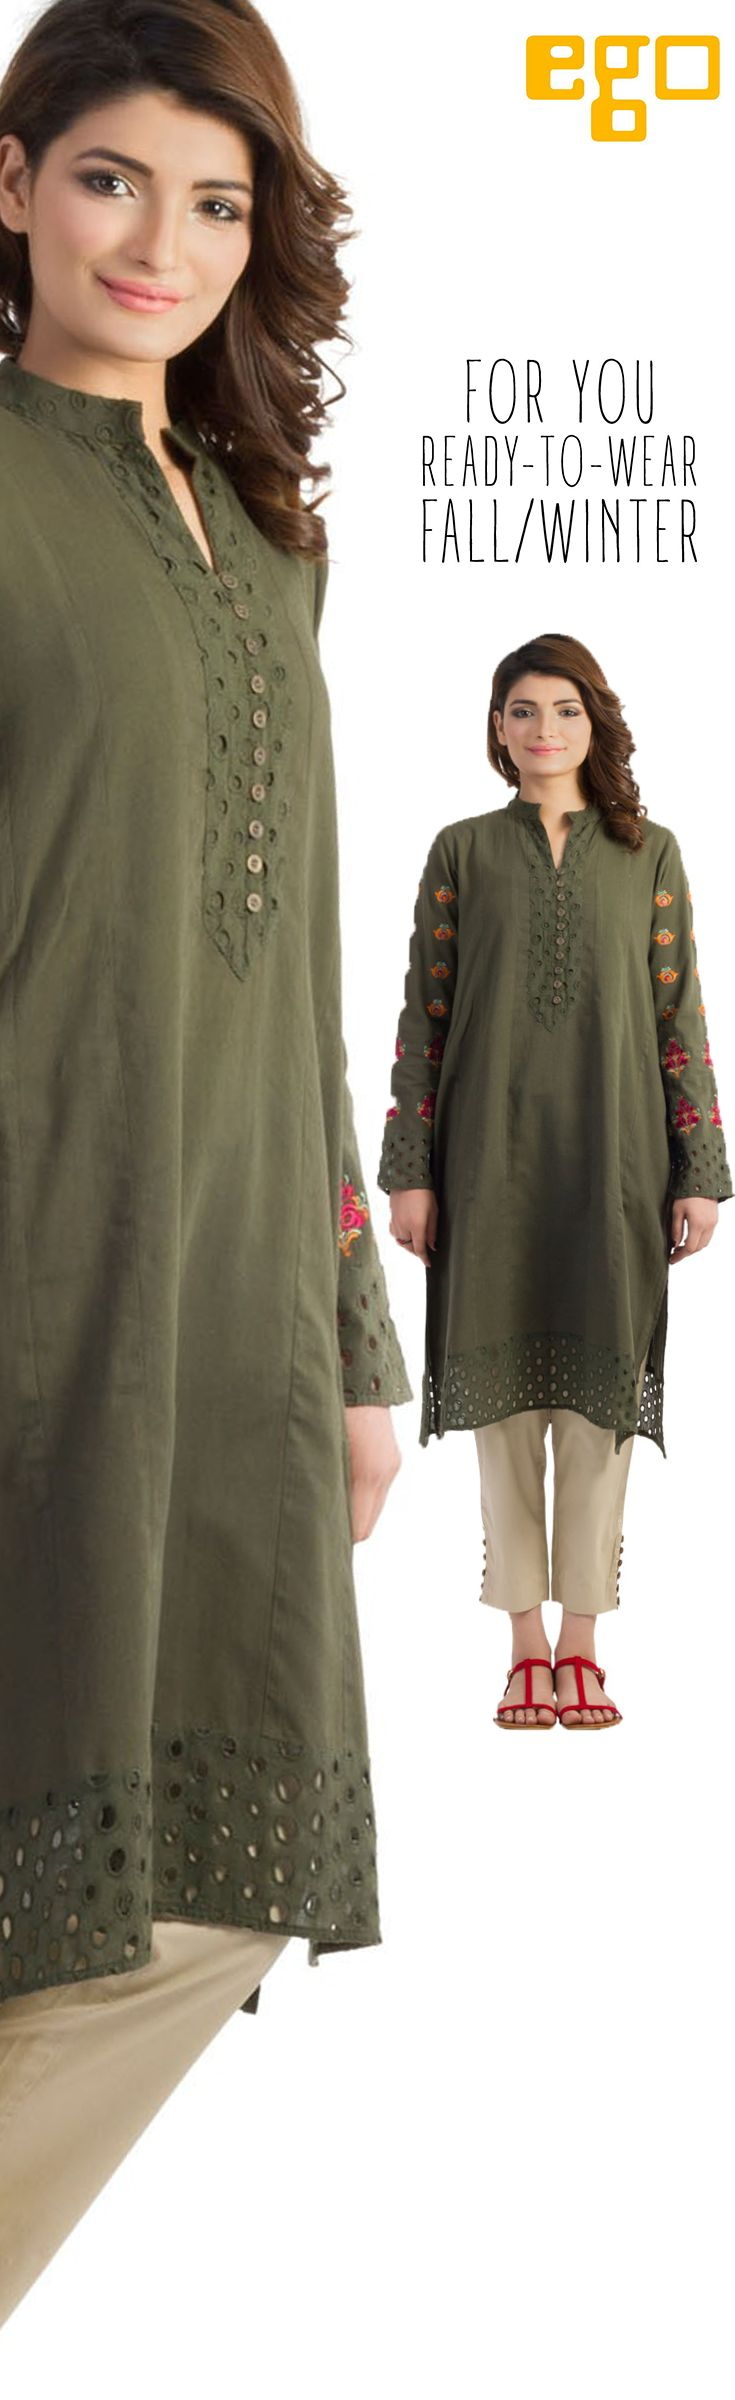 FOR YOU:  Elegant mid length kurta style with embroidery on full sleeves, Band collar with chikan placket and buttons.  Fabric: Light Weight 100% Cotton Fabric